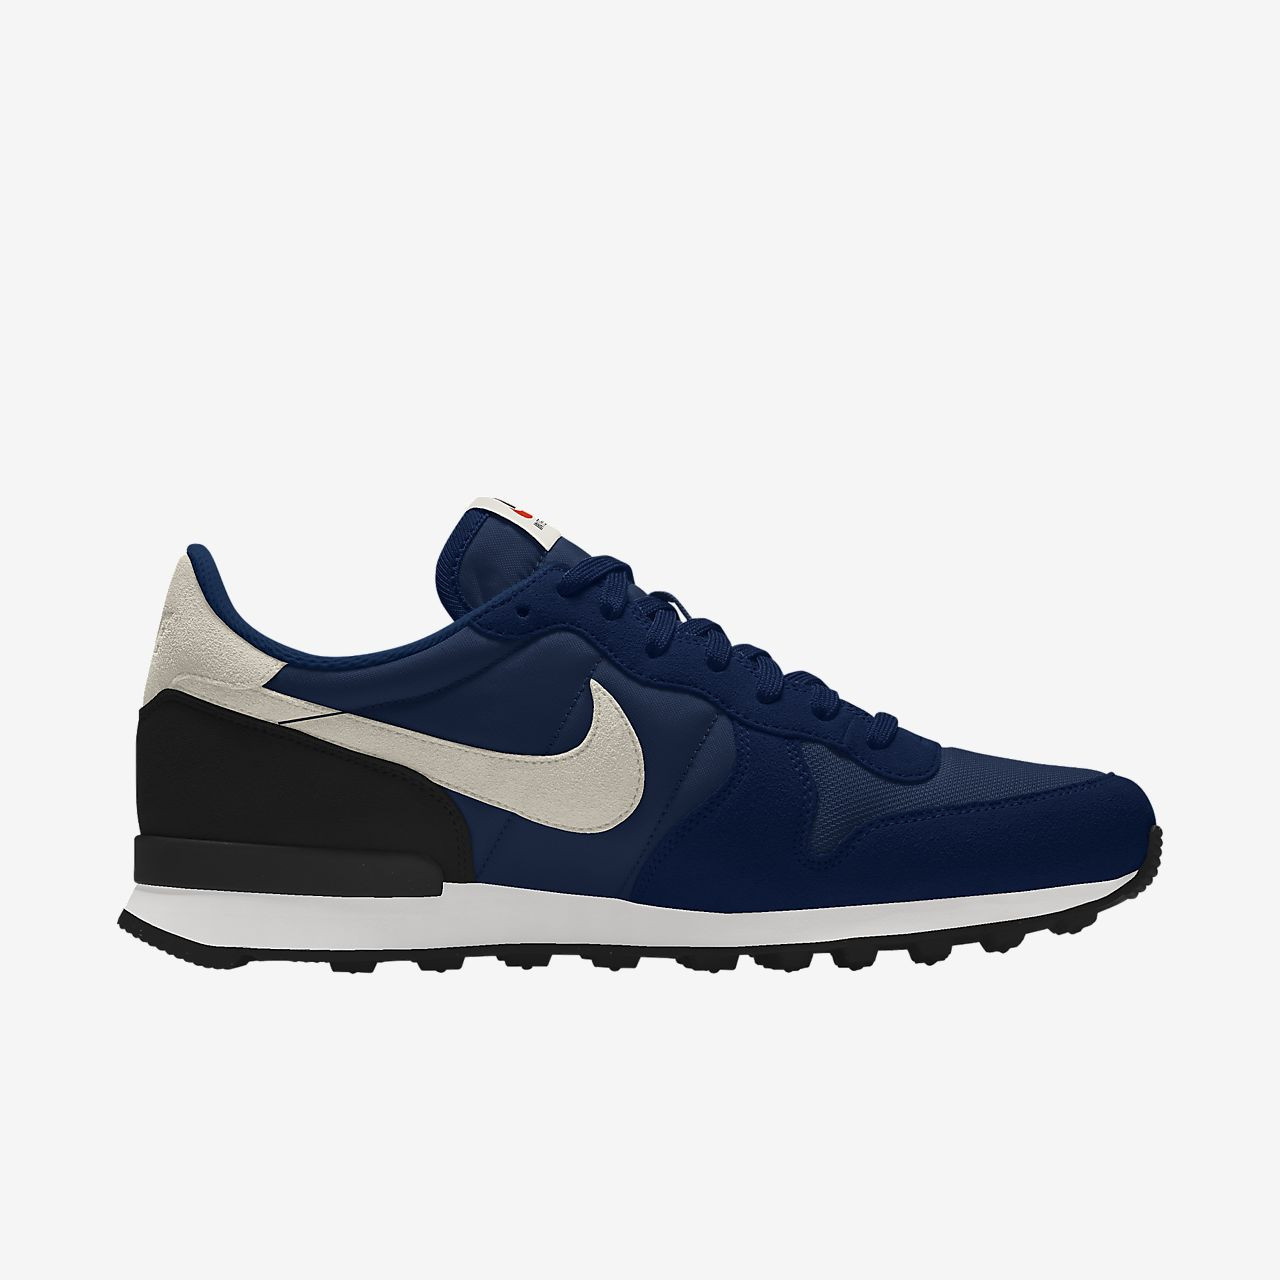 Nike Internationalist By You Custom herenschoen